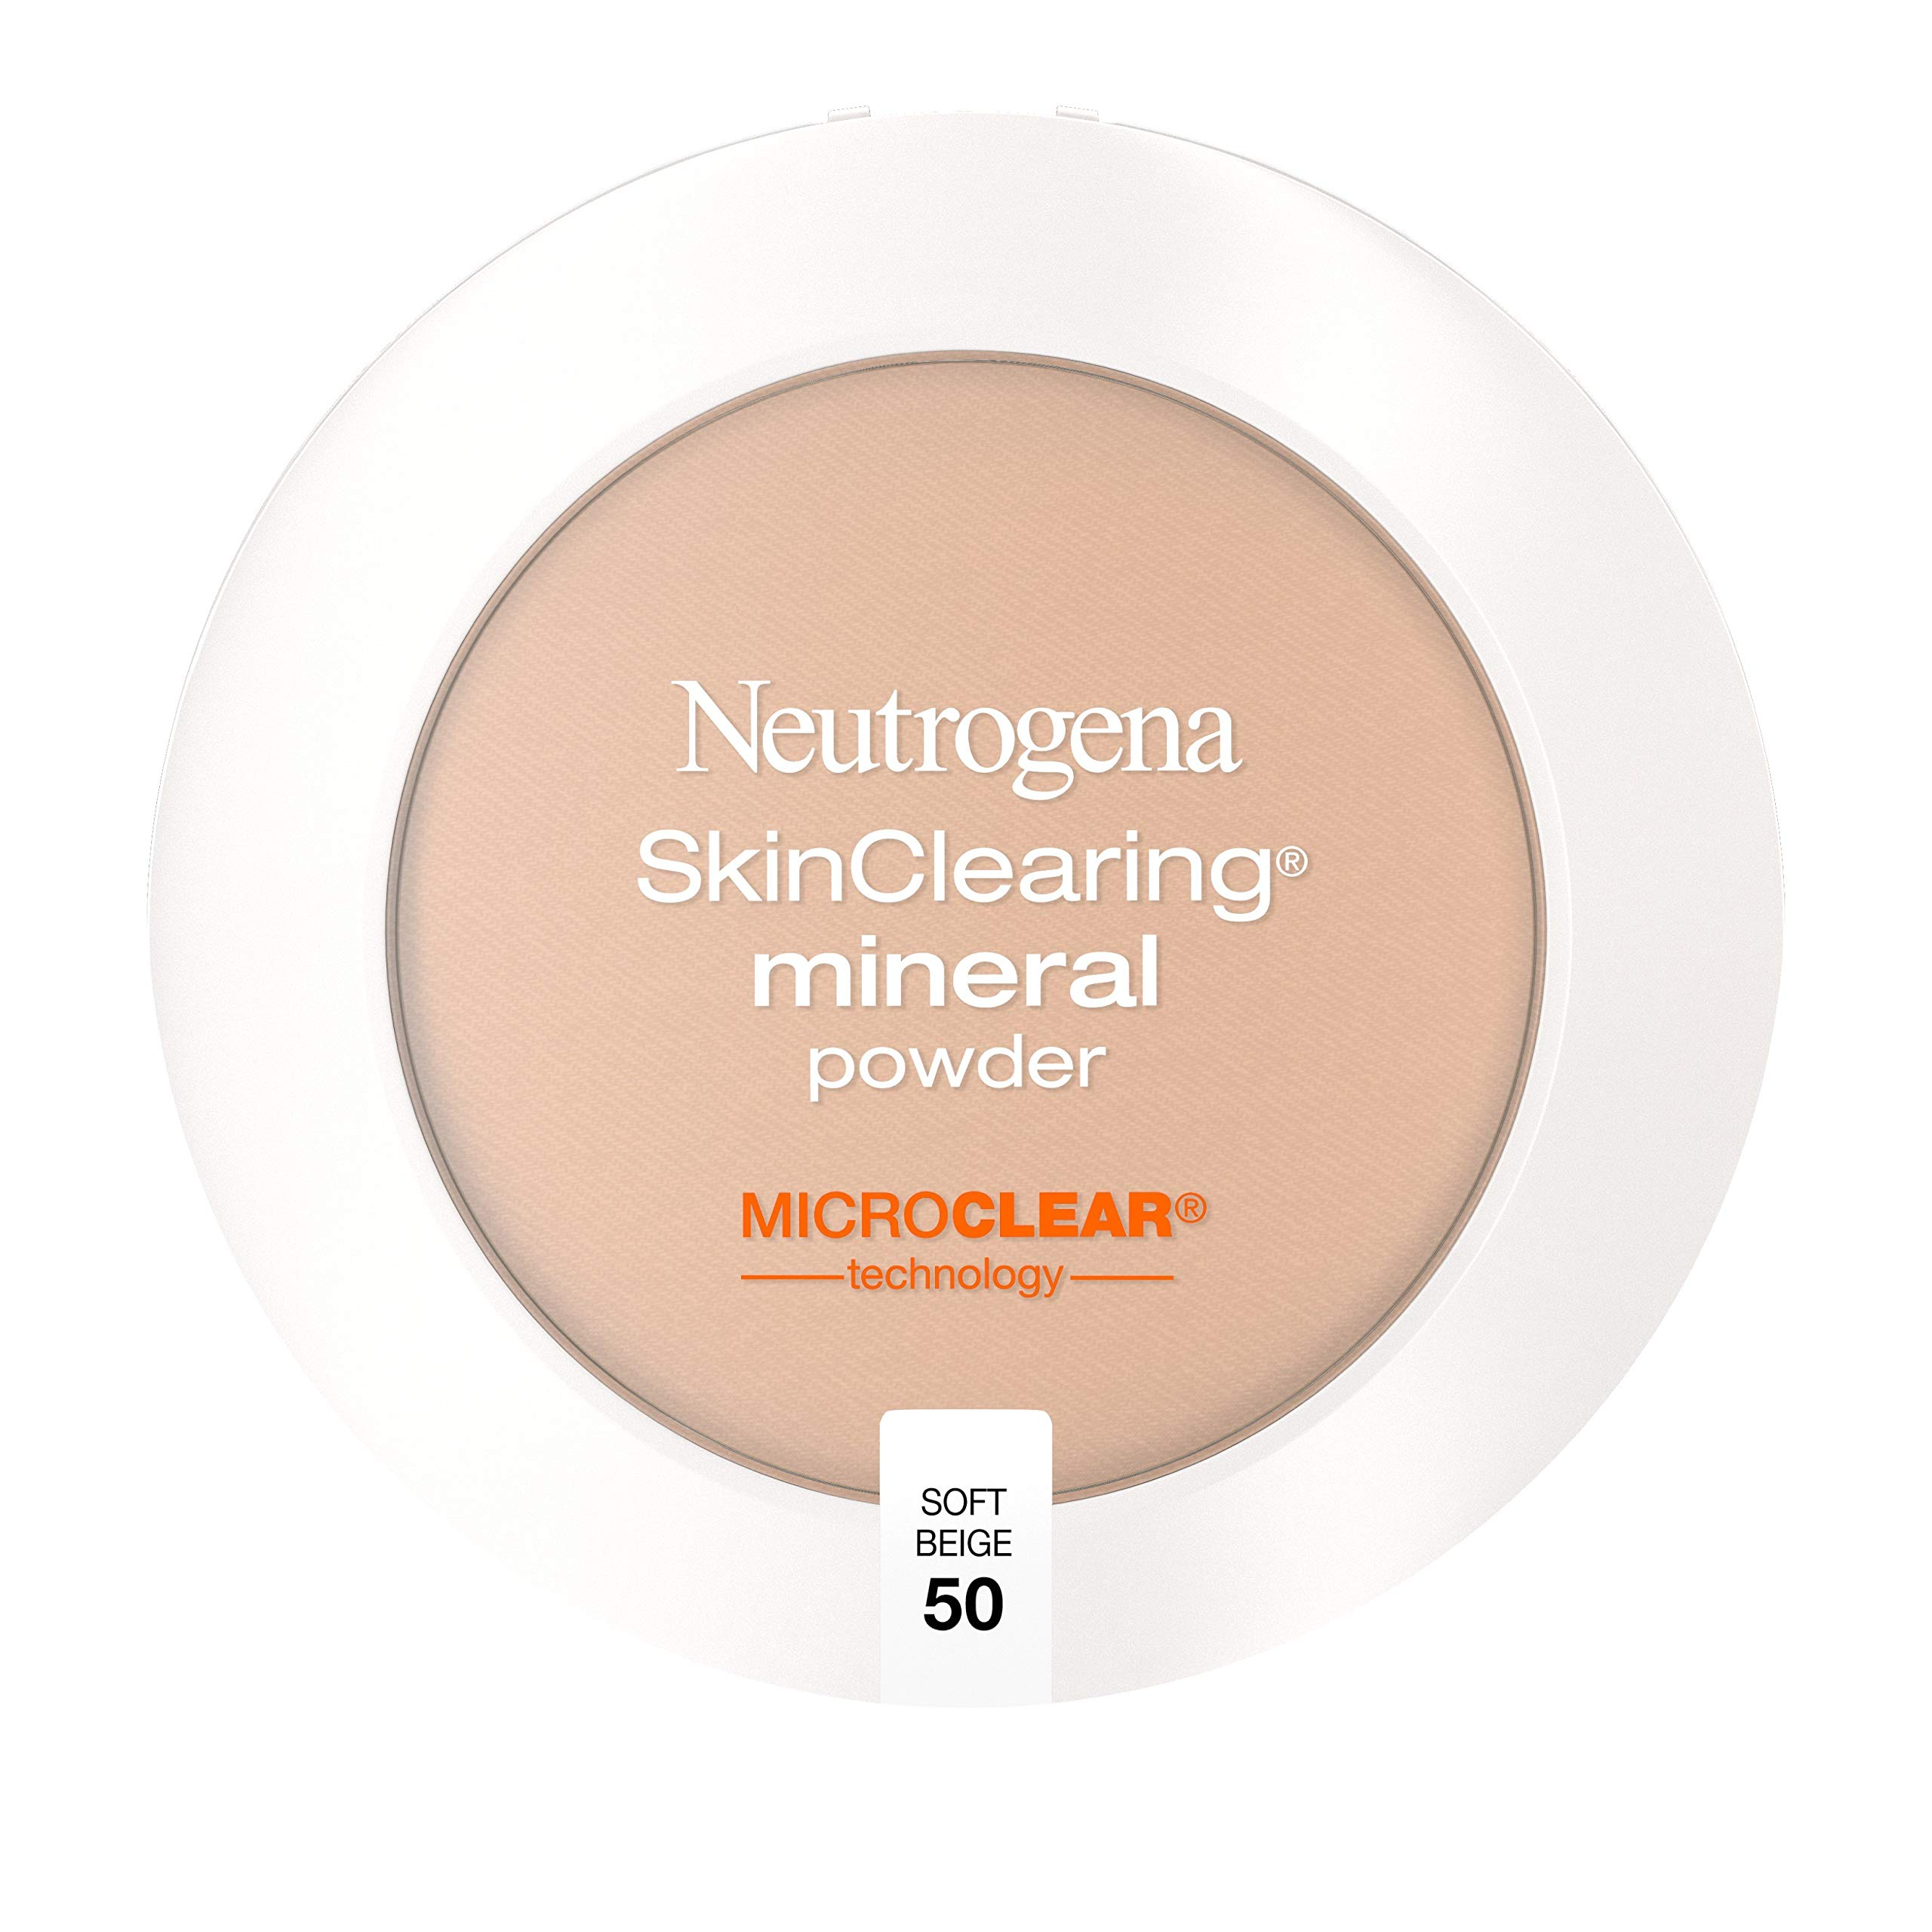 Neutrogena SkinClearing Mineral Acne-Concealing Pressed Powder Compact, Shine-Free & Oil-Absorbing Makeup with Salicylic Acid to Cover, Treat & Prevent Breakouts, Soft Beige 50,.38 oz